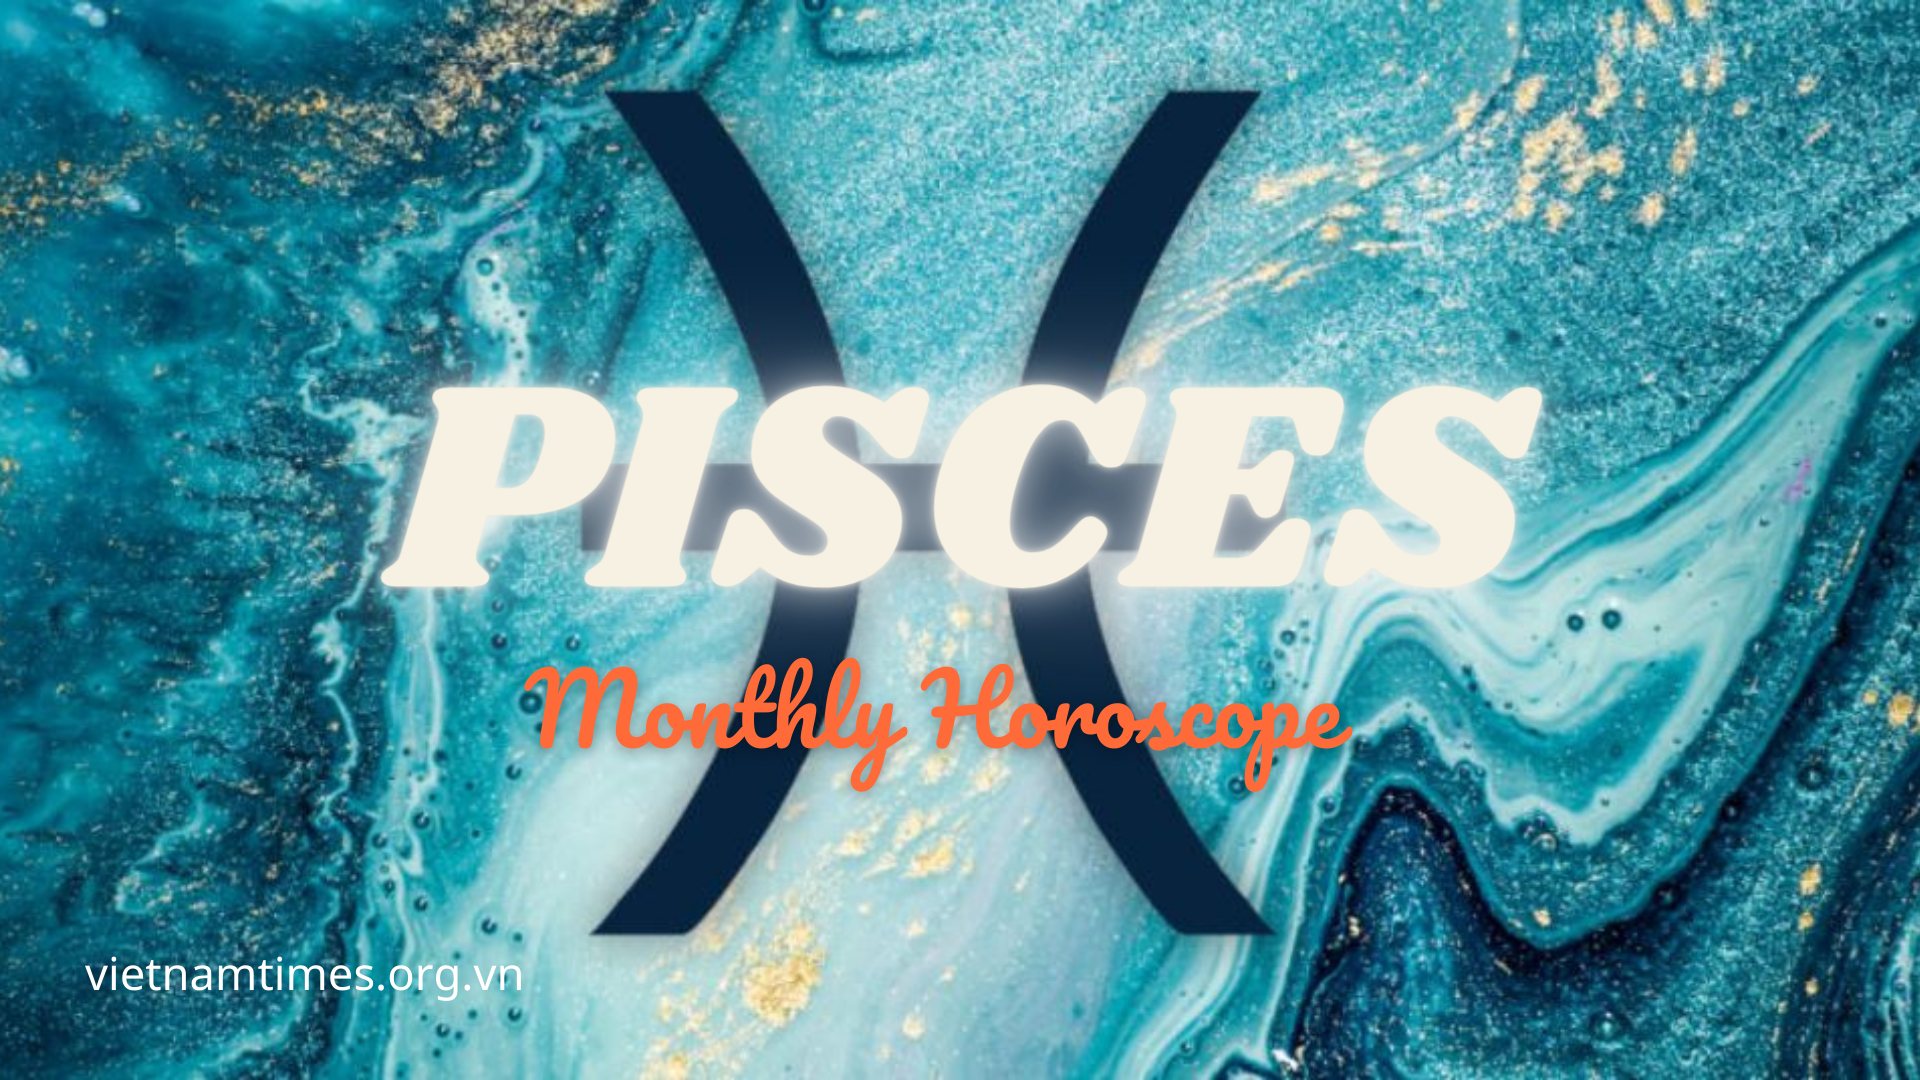 Pisces Horoscope September 2021: Monthly Predictions for Love, Financial, Career and Health